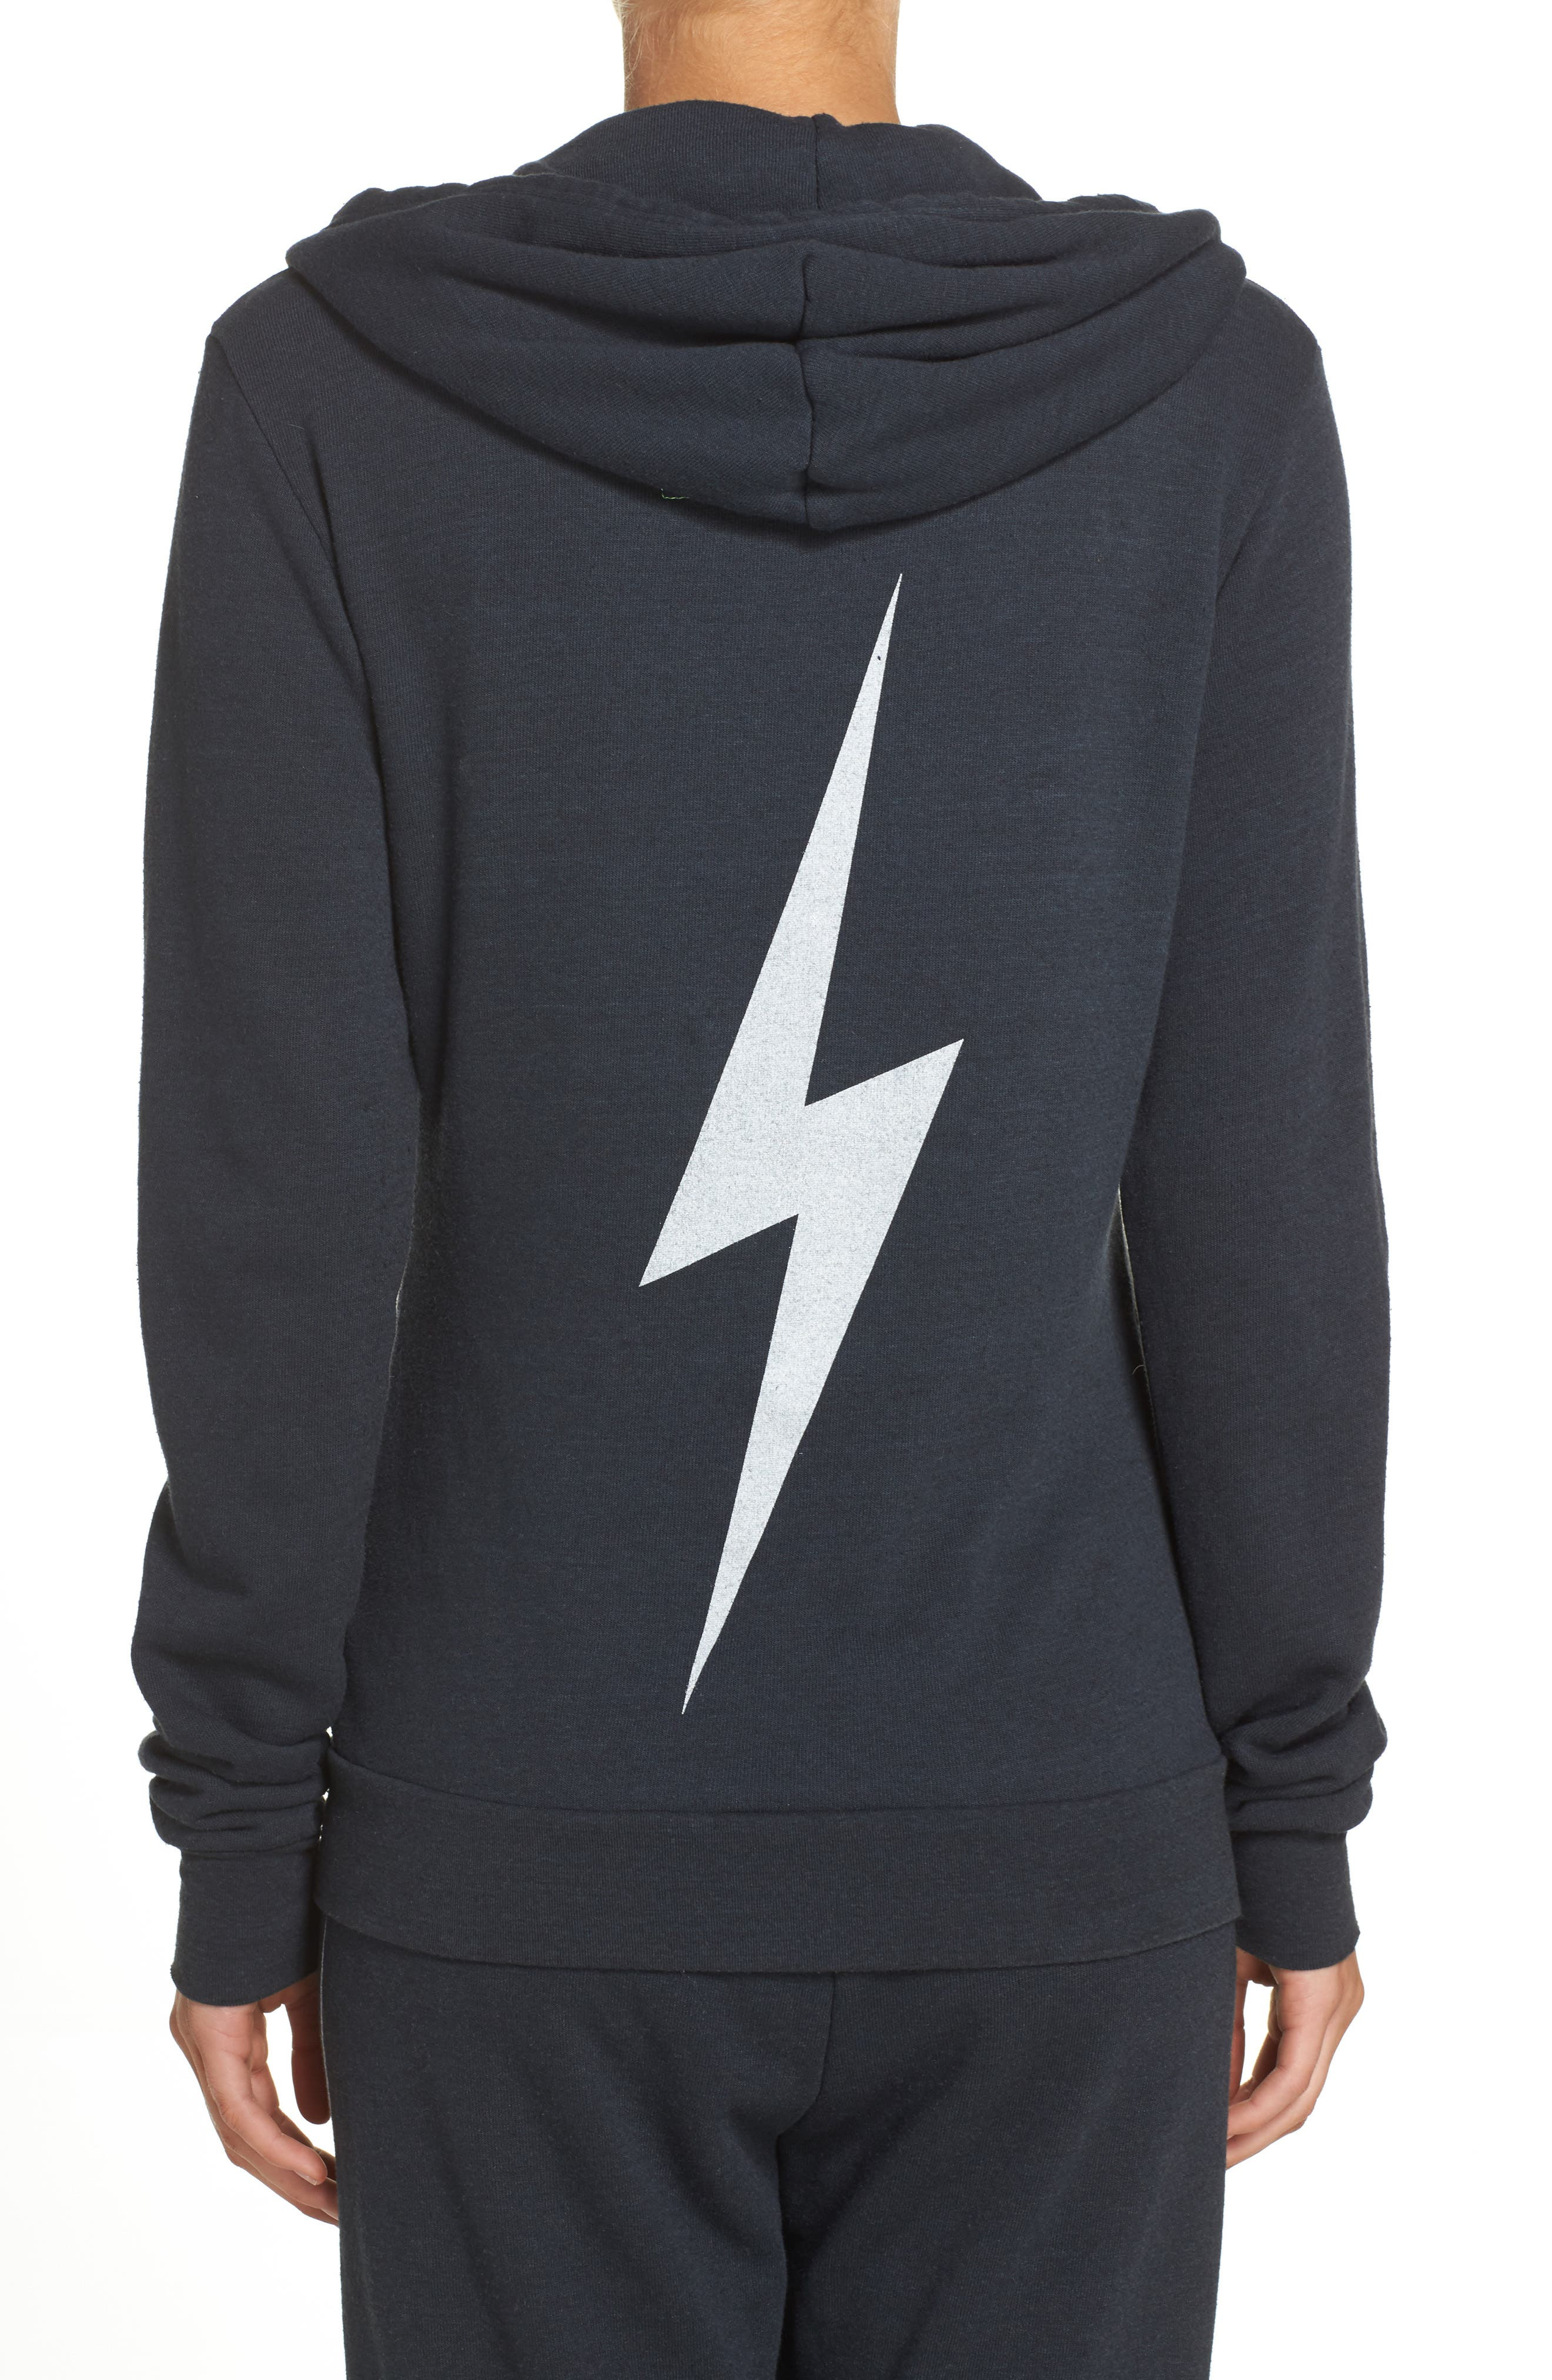 Bolt Zip Hoodie,                             Alternate thumbnail 6, color,                             CHARCOAL